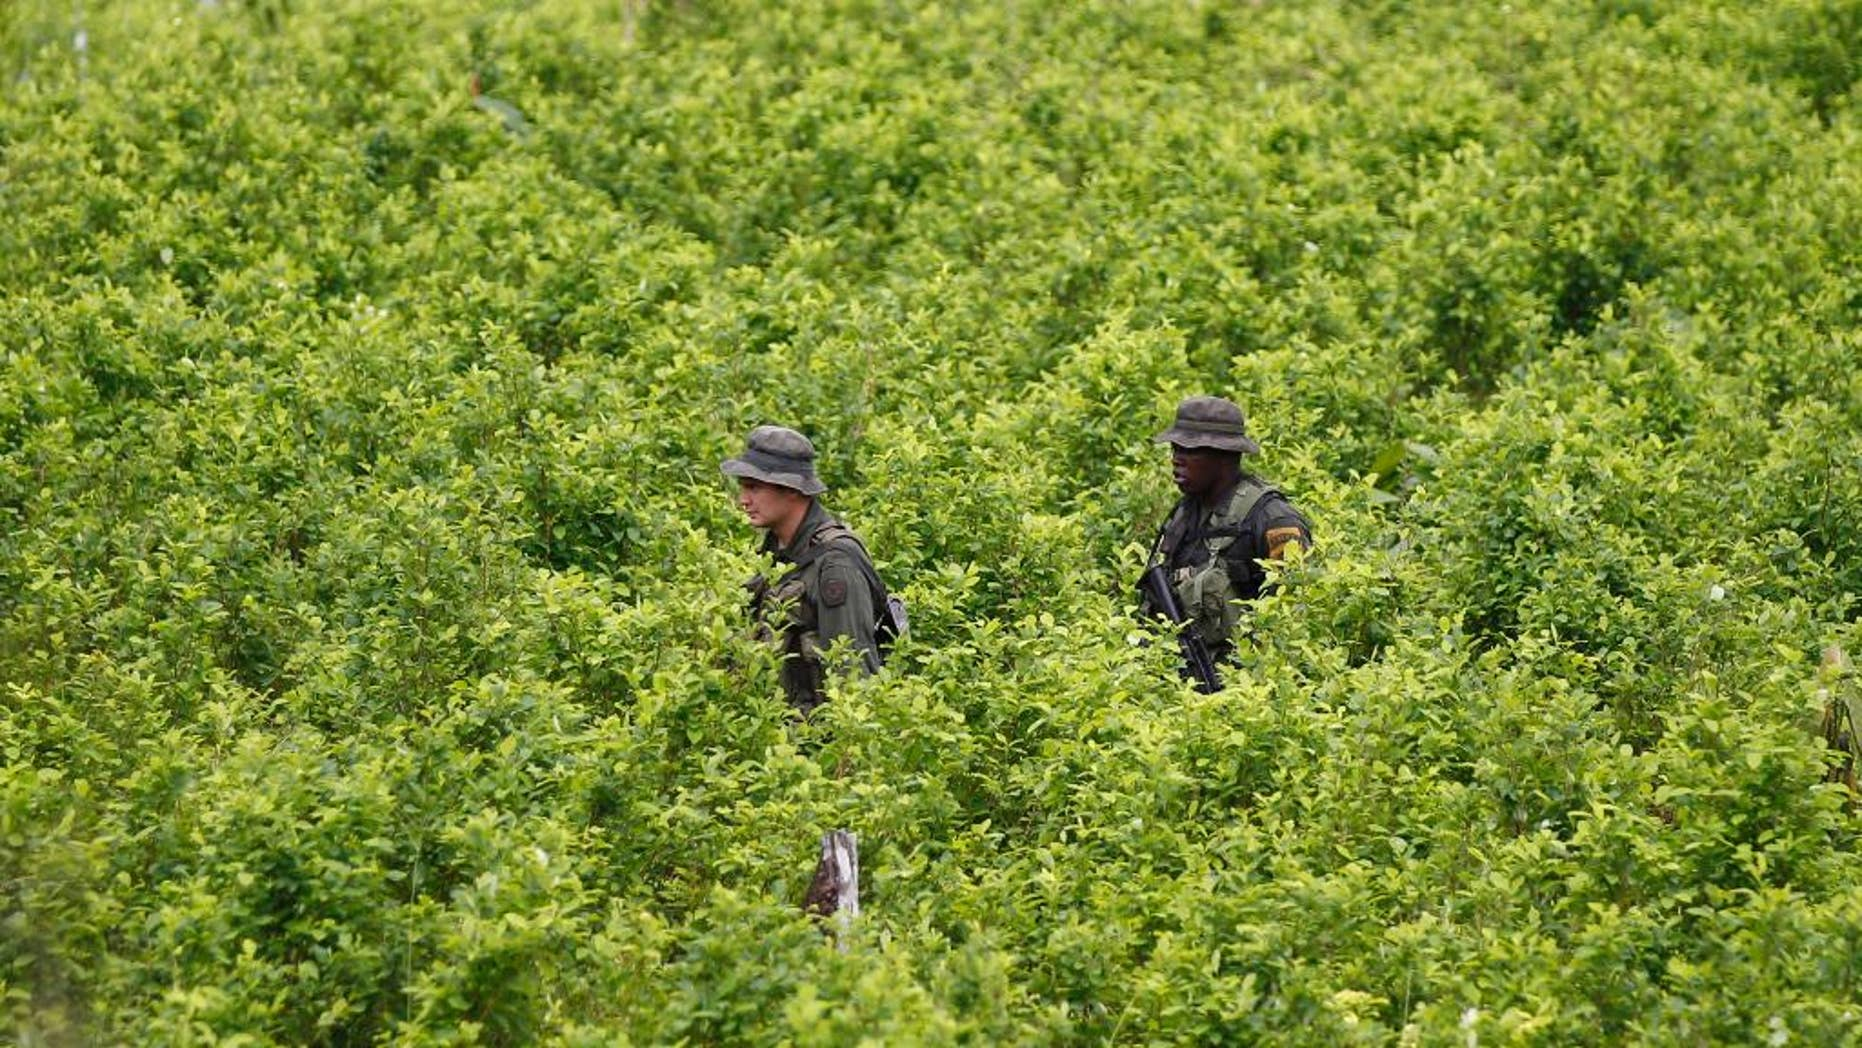 FILE - In this Aug. 15, 2012 file photo, police patrol in a coca field as hired farmers uproot coca shrubs as part of a manual eradication campaign of illegal crops in San Miguel on Colombia's southern border with Ecuador. An annual U.N. report released on Wednesday, July 15, 2015 says Colombia has surpassed Peru in land under coca cultivation, the plant used to make cocaine. (AP Photo/Fernando Vergara, File)